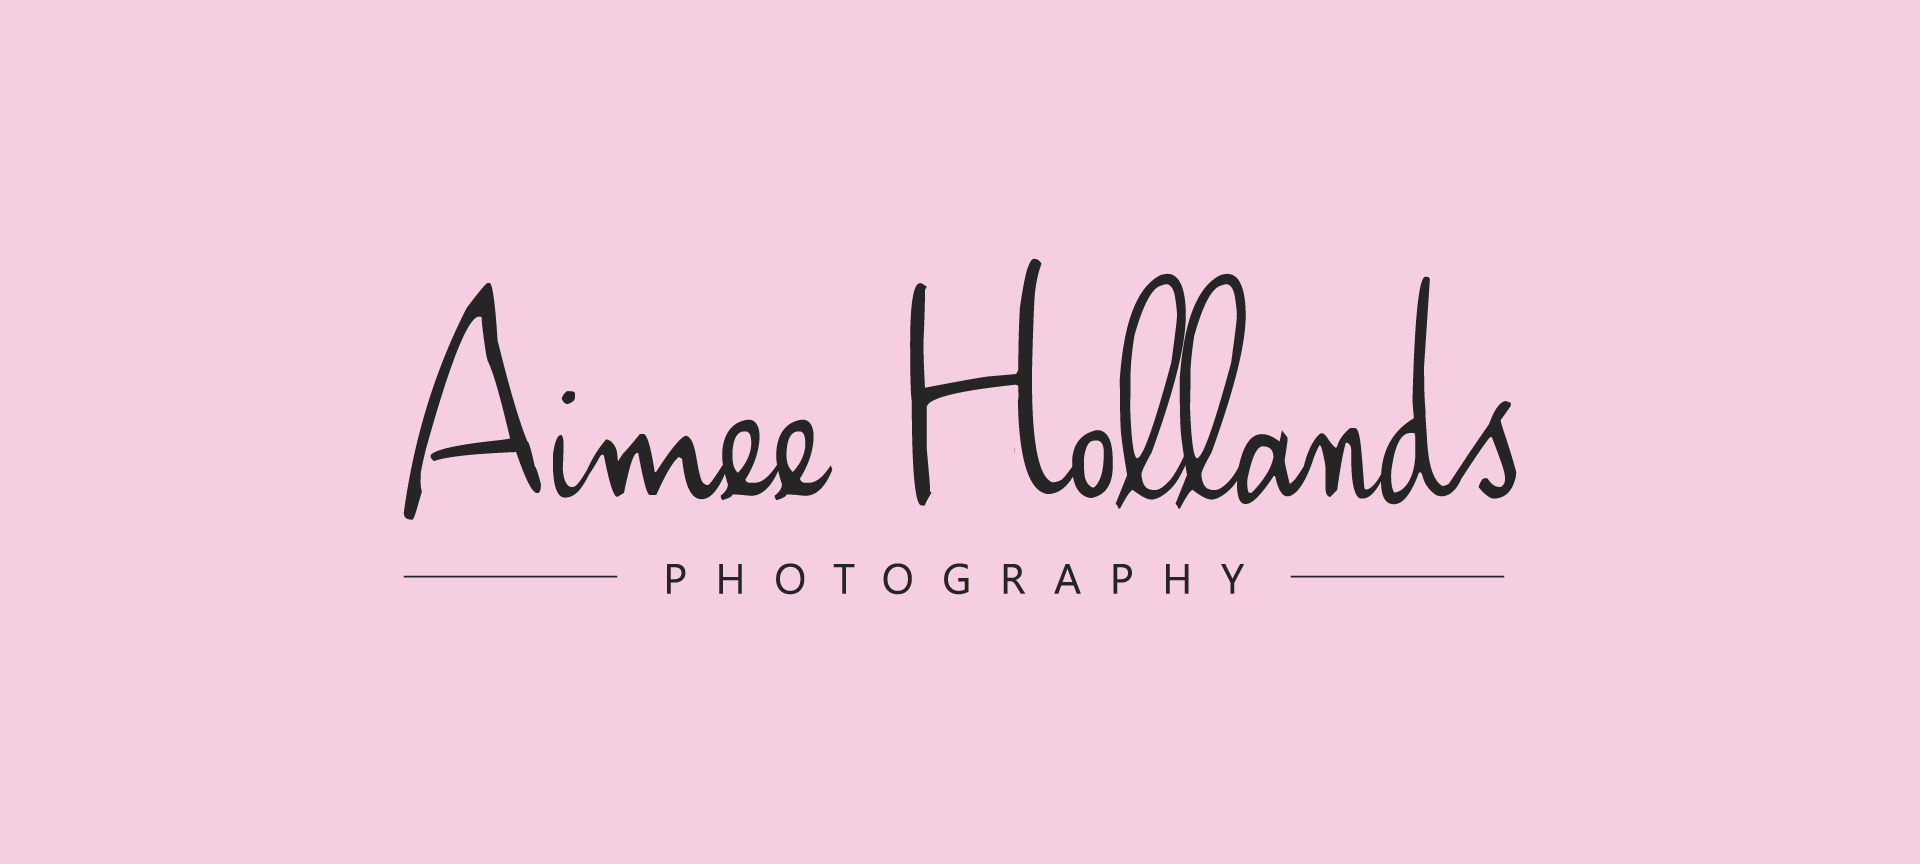 aimee-hollands-photography.png